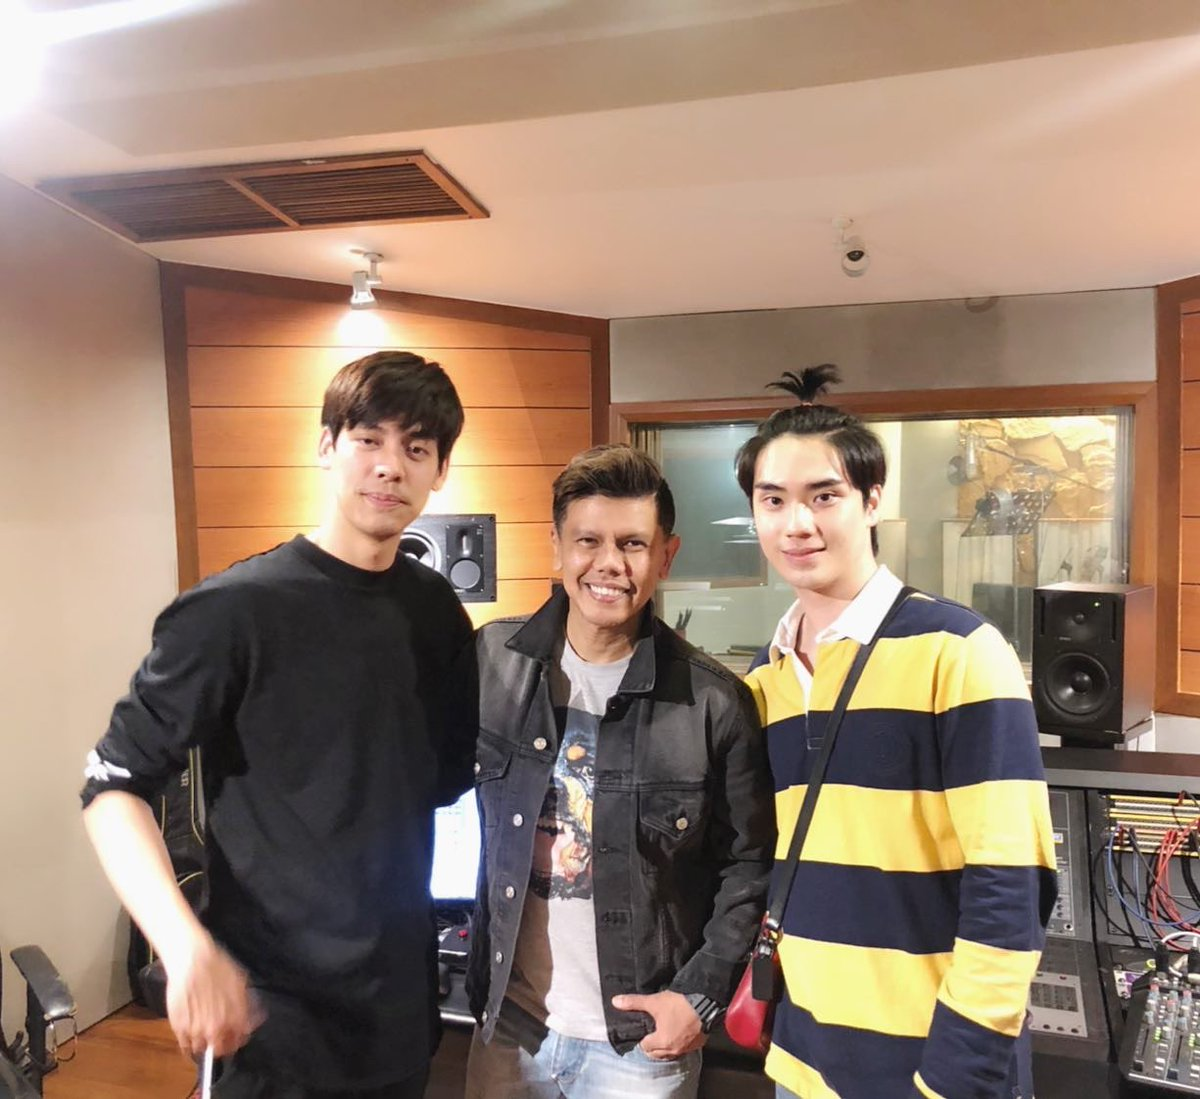 IG: axlstep& nextxlstep  J ust finished recording with Tae  and Tee SB5. For the new version of Candy Crush  #เต้ติสชีวิตโลเทค #TEeThanapon #teamtae_darvid<br>http://pic.twitter.com/PG02uNFnLy